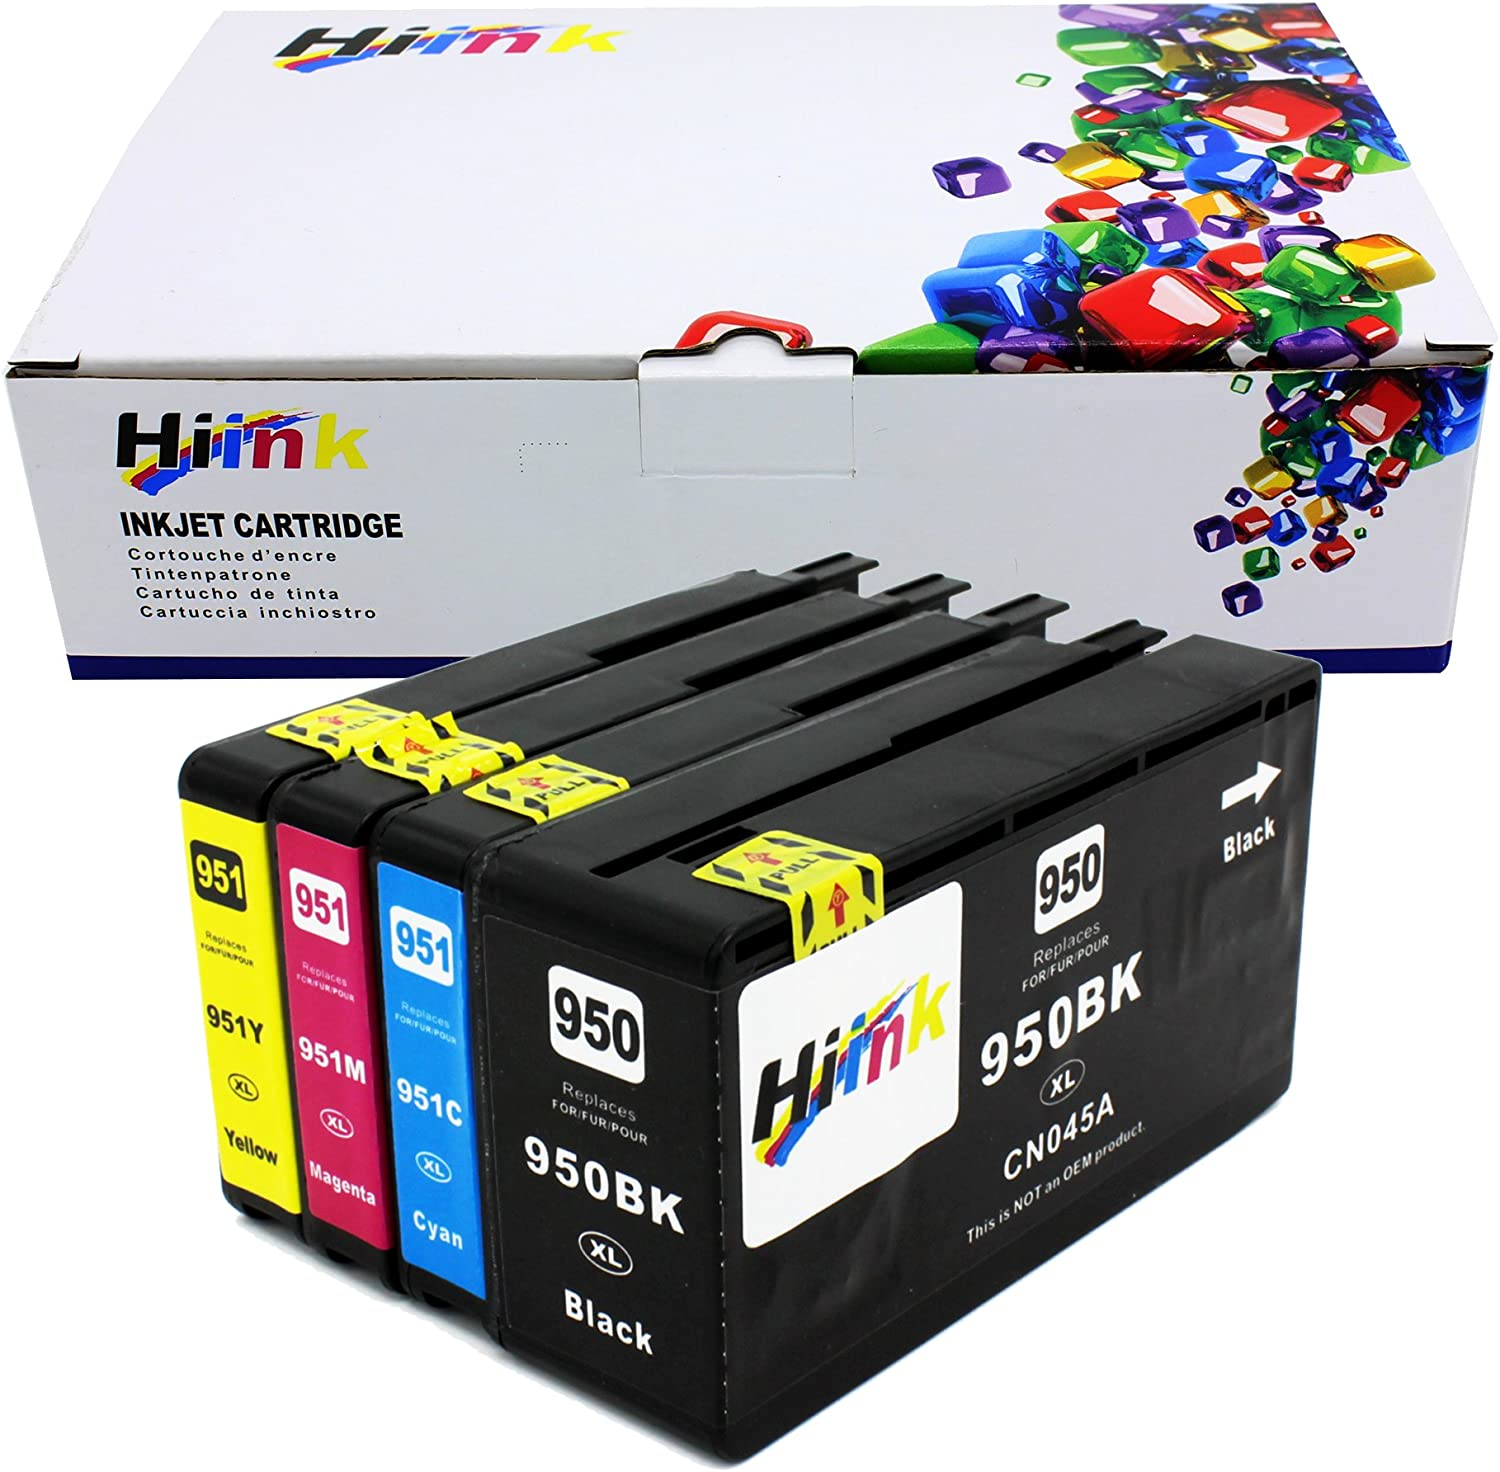 HIINK Compatible Ink Replacement for HP 950 951 950XL 951XL High Yield Ink Cartridges Used in HP OfficeJet Pro 8600 8100 8610 8620 8660 8630 8640 8615 8625 251DW 276DW 271DW (BK, C, M, Y, 4-Pack)